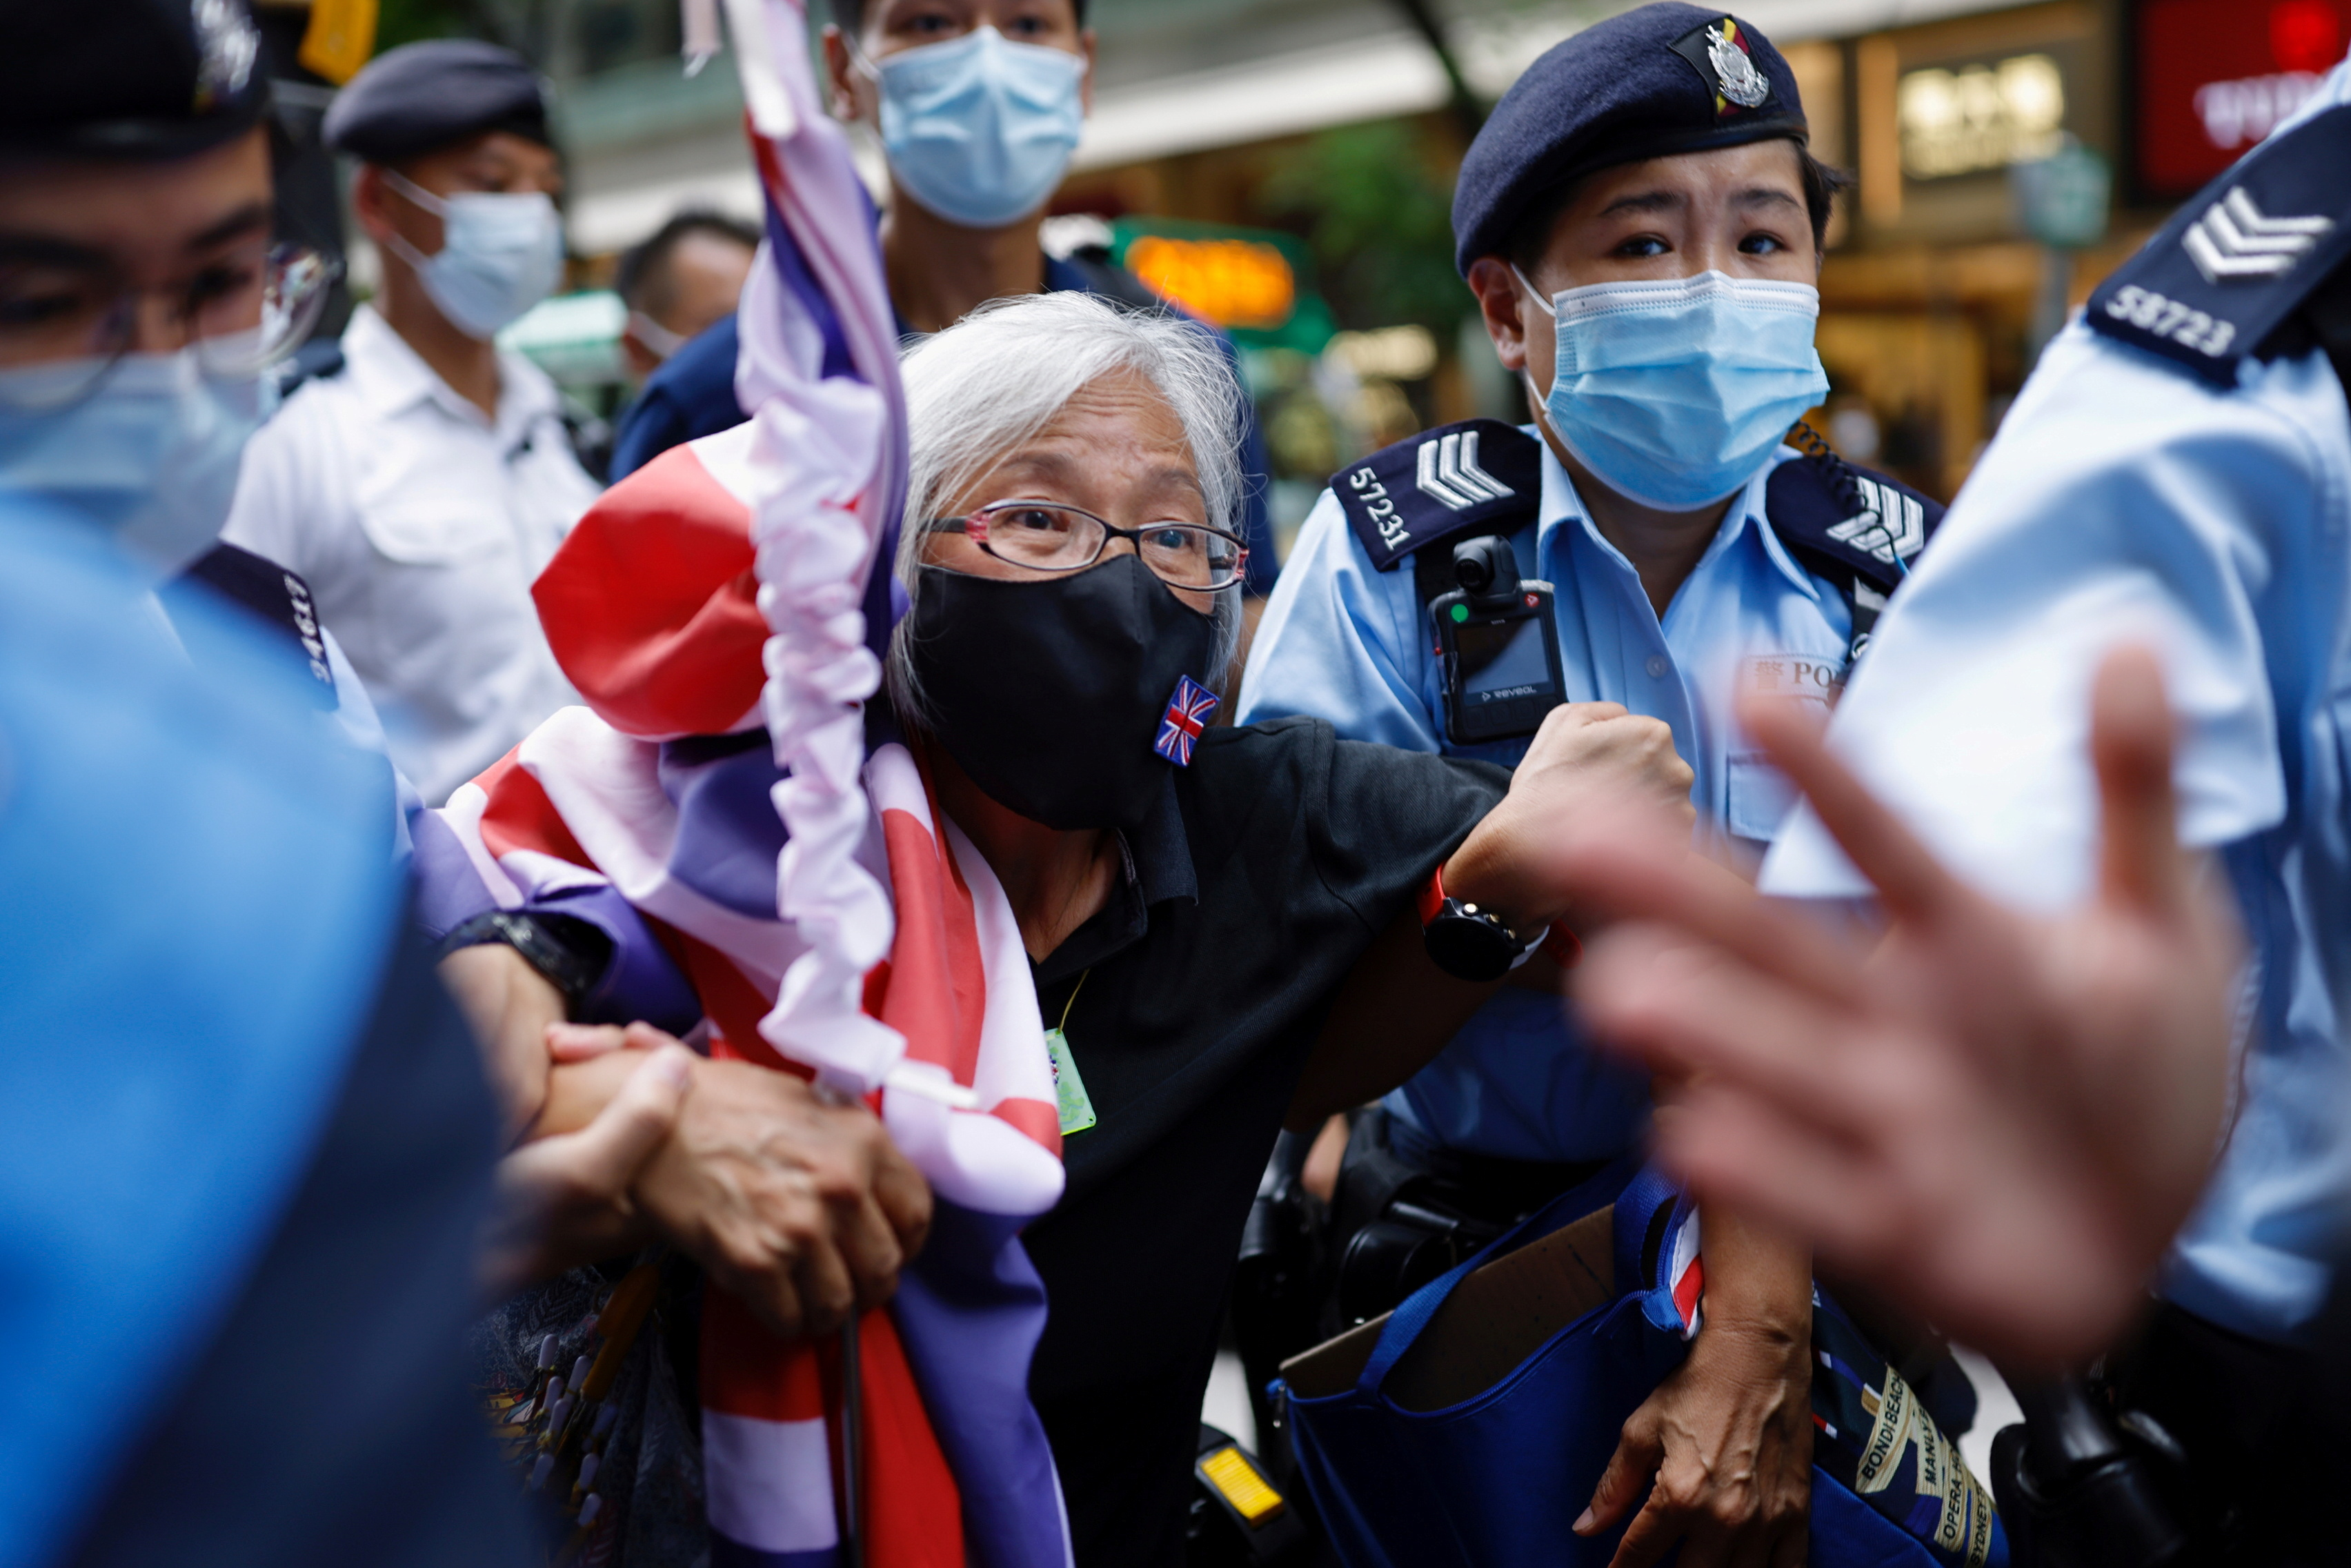 A pro-democracy protester with a Union flag mask is taken by police at Causeway Bay after police denied permission for a protest rally during the 24th anniversary of the former British colony's return to Chinese rule, on the 100th founding anniversary of the Communist Party of China, in Hong Kong, China July 1, 2021. REUTERS/Tyrone Siu